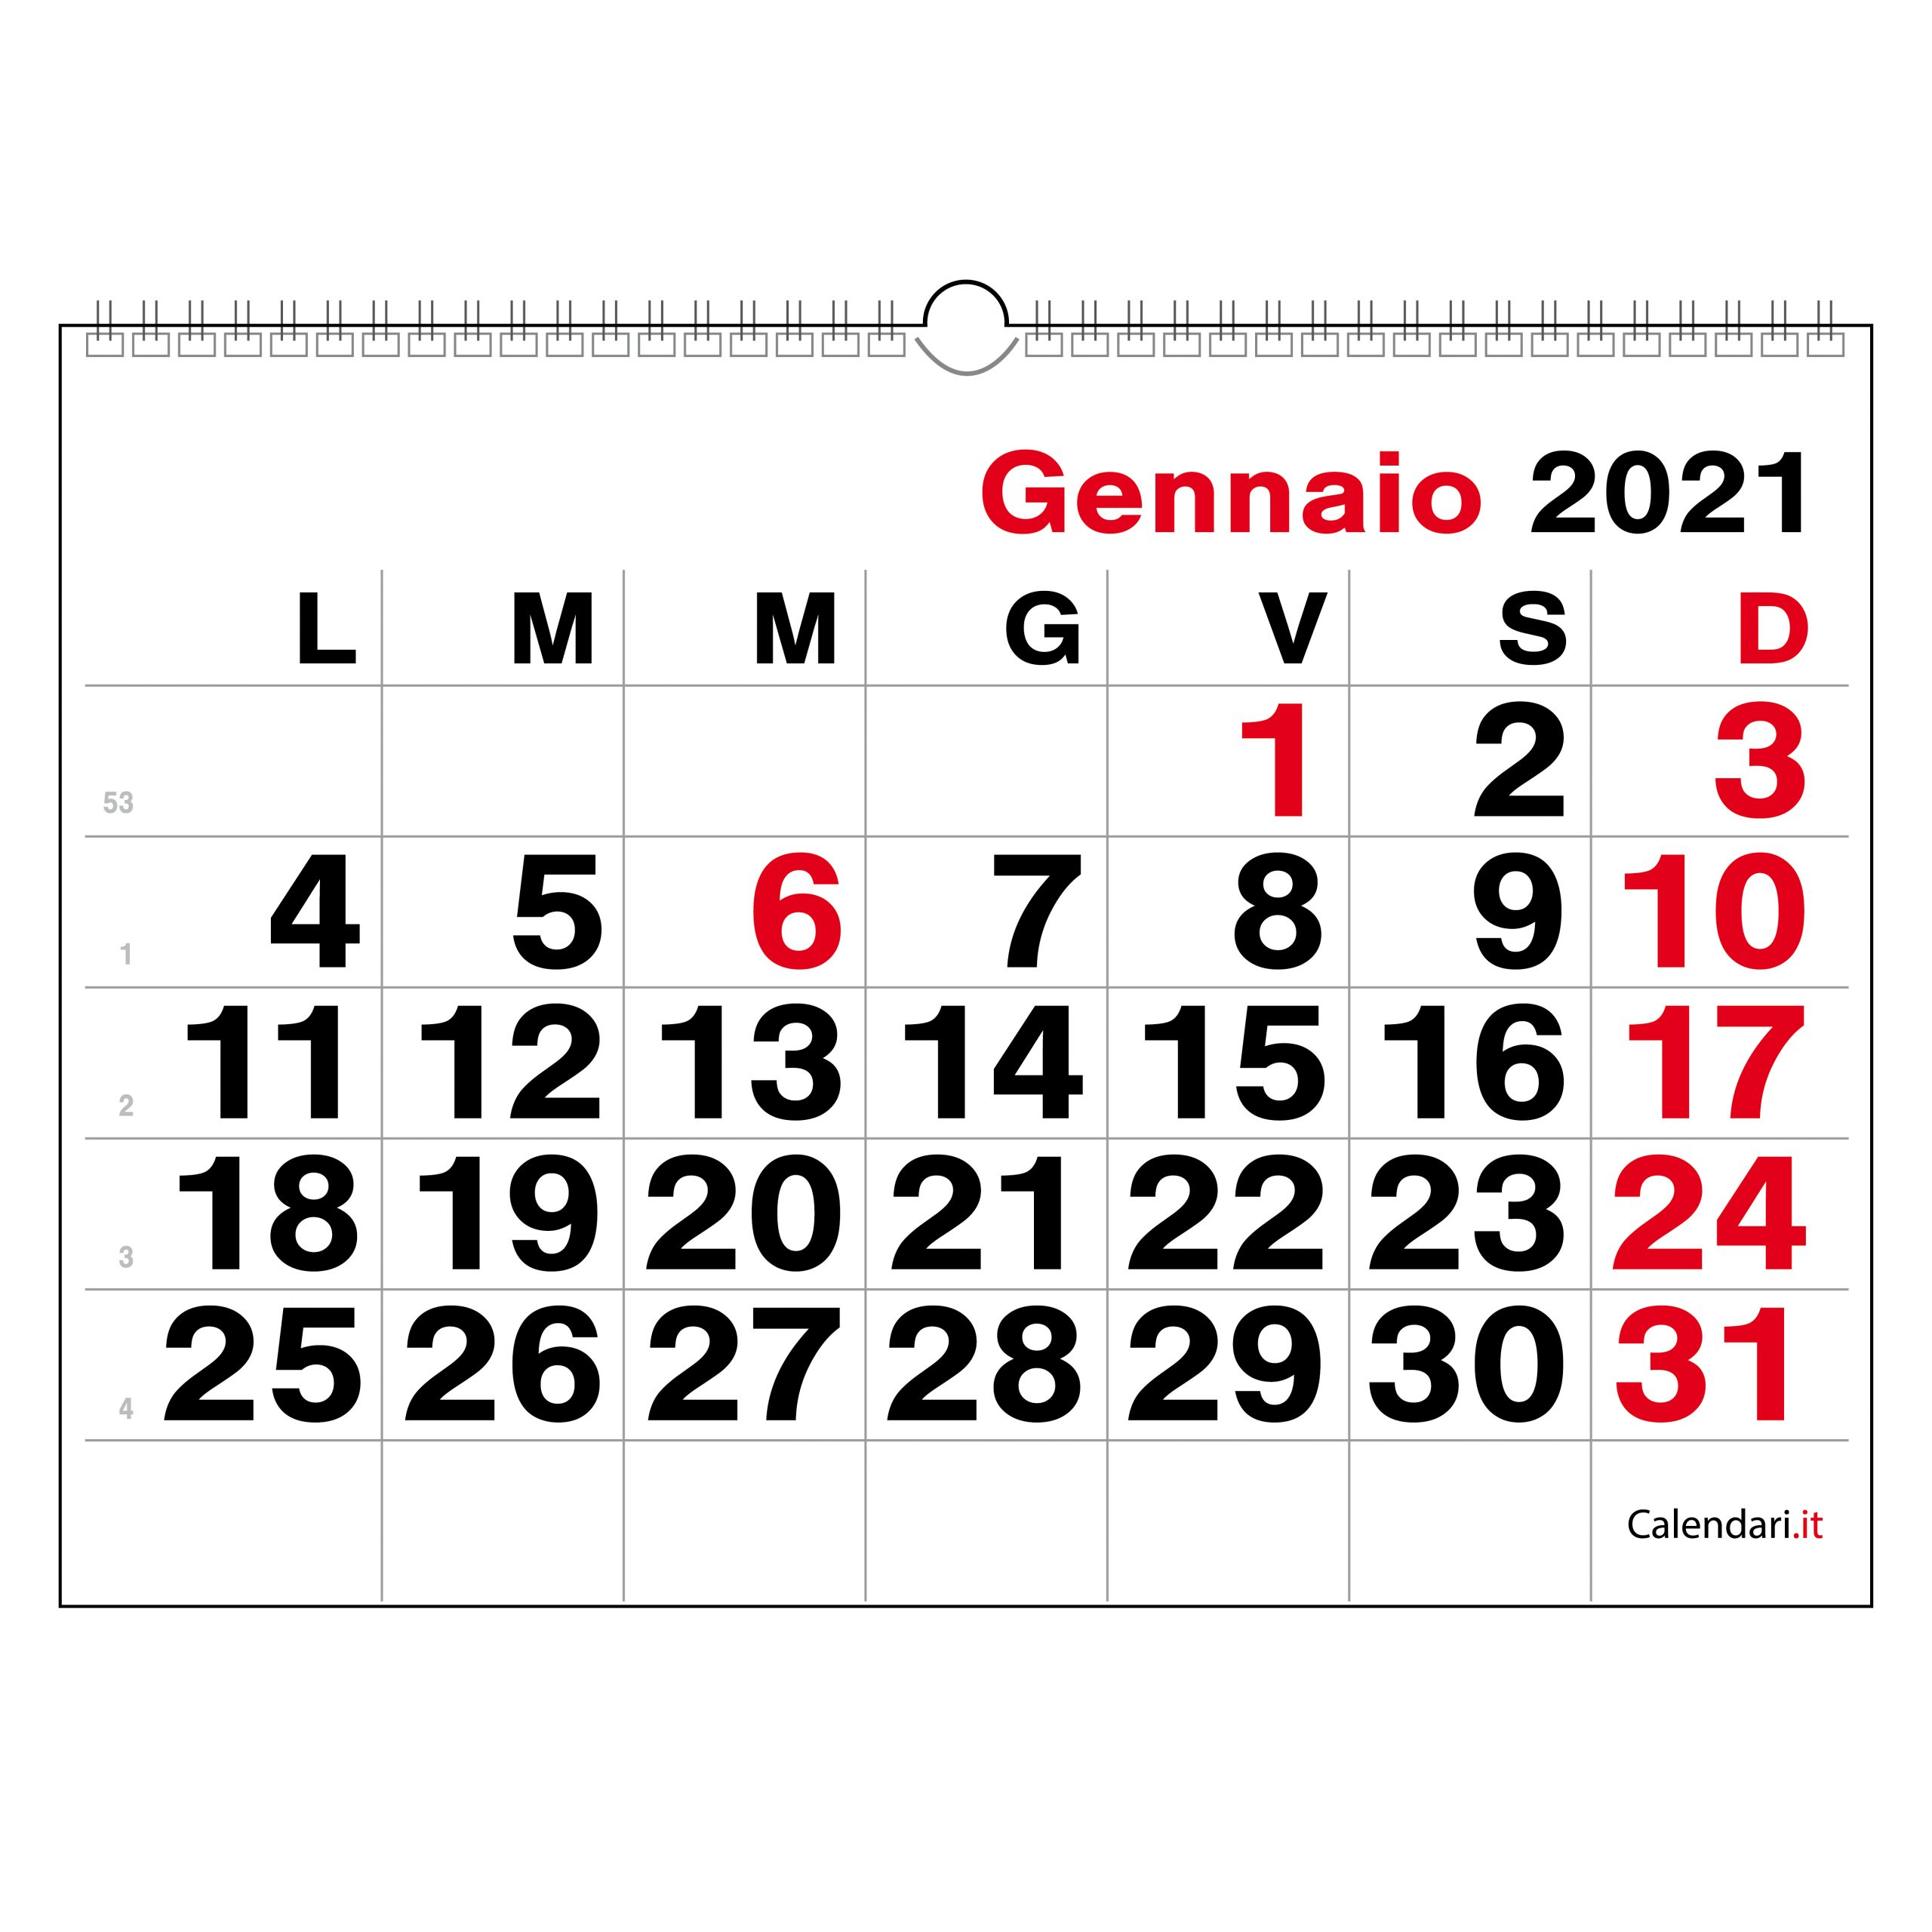 Calendario 2021 In Orizzontale Calendario 2021 numeri grandi orizzontale   Calendari.it